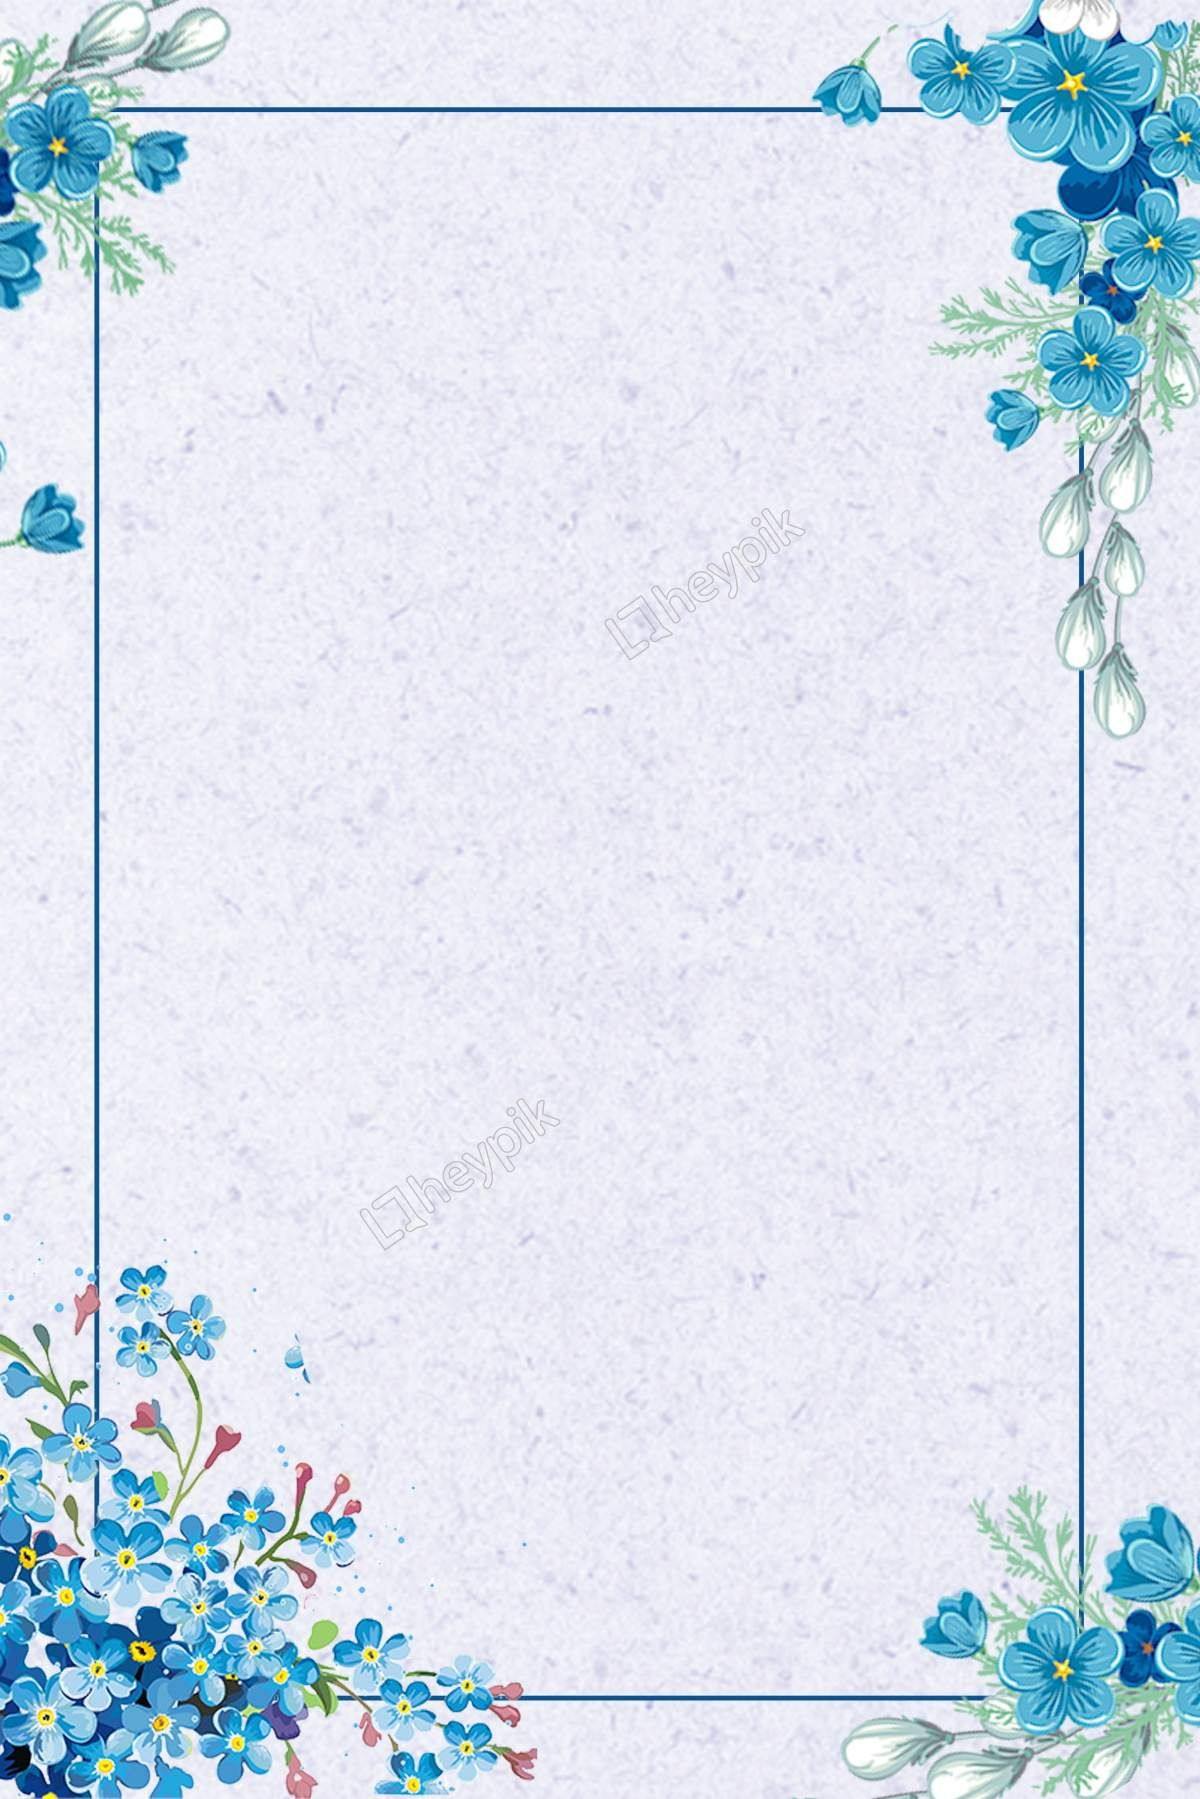 blue flowers lines the summer solstice? background vector from heypik.com